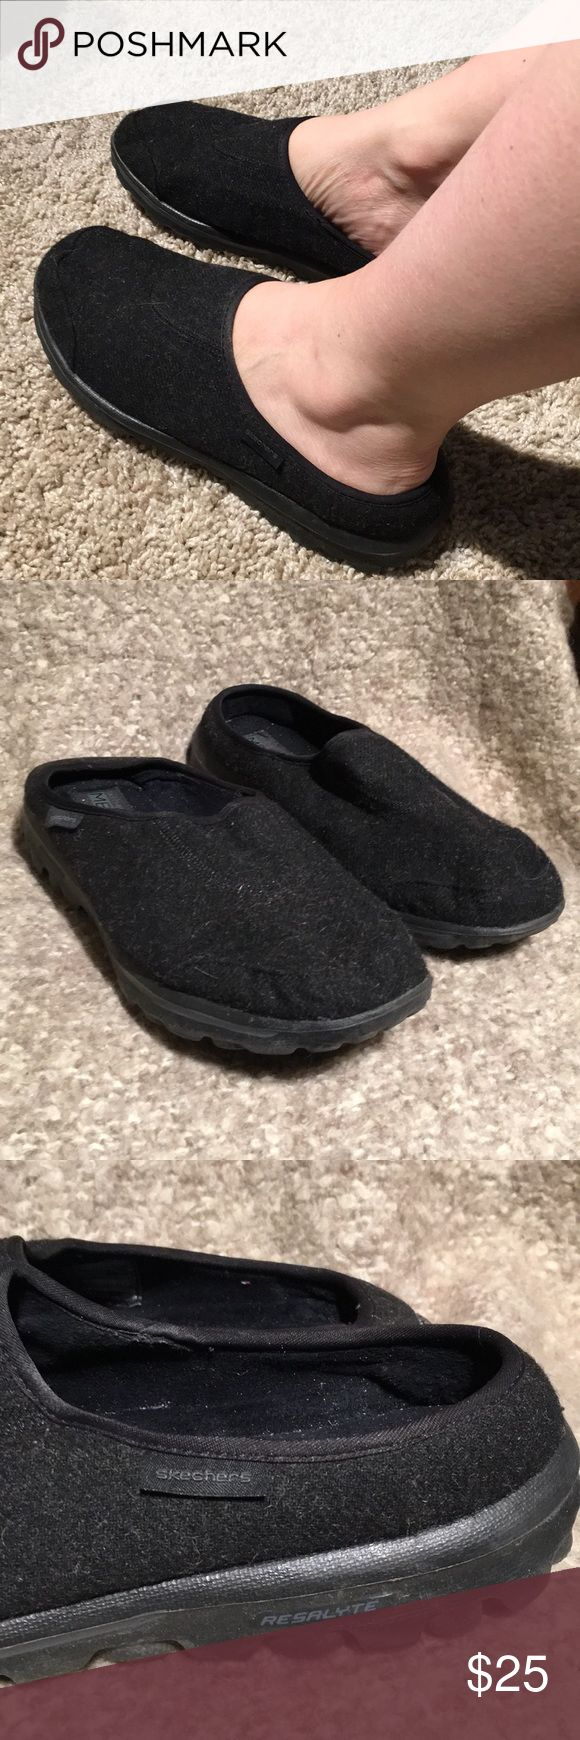 Super lightweight SKECHERS slip on GUC. Feels lovely on the feet. Great for long days standing. Memory foam fit.  Shoe Box B. Skechers Shoes Flats & Loafers